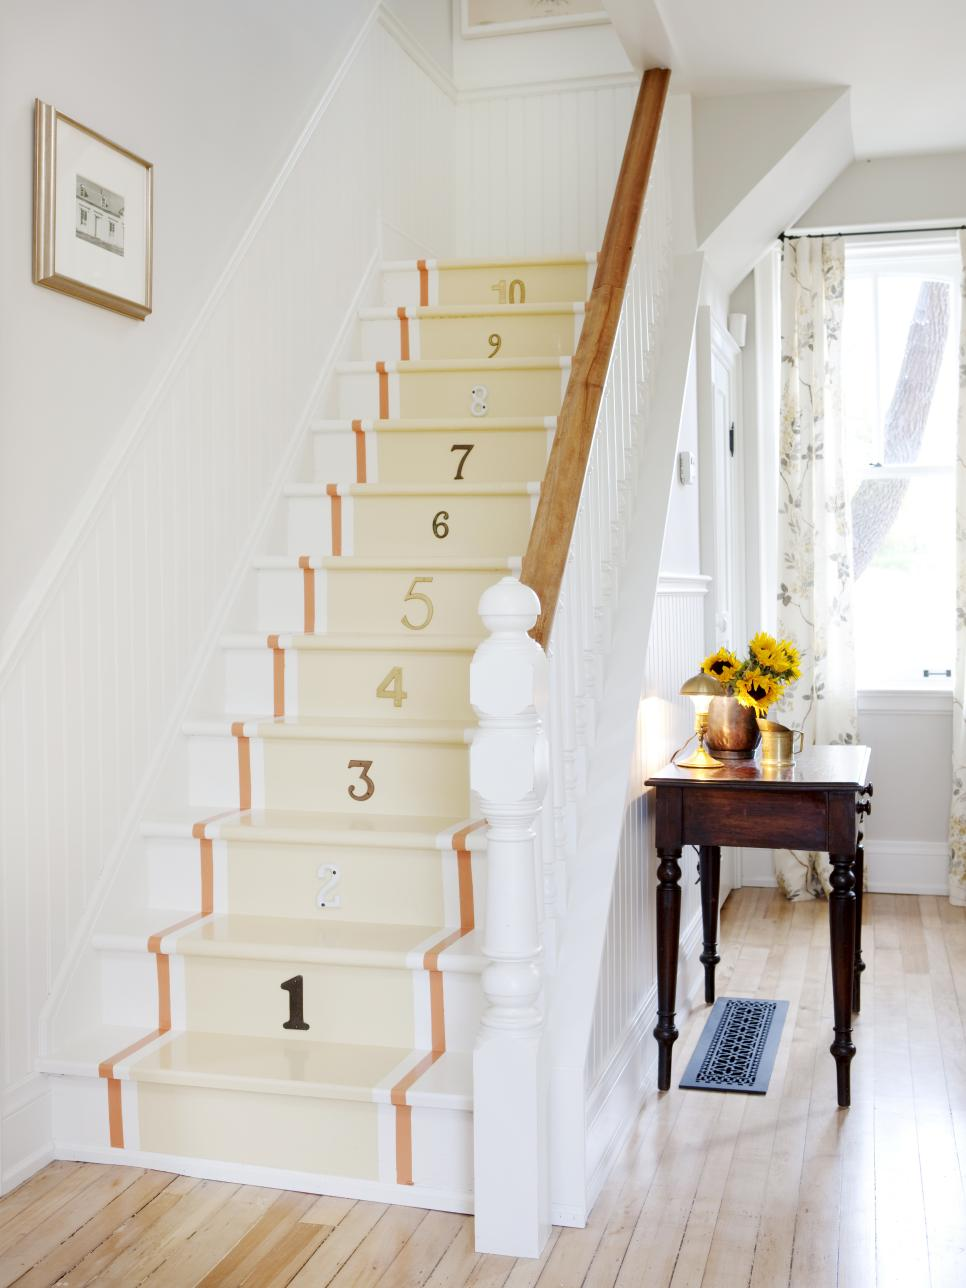 step up your space with clever staircase designs hgtv - Stairs Design Ideas